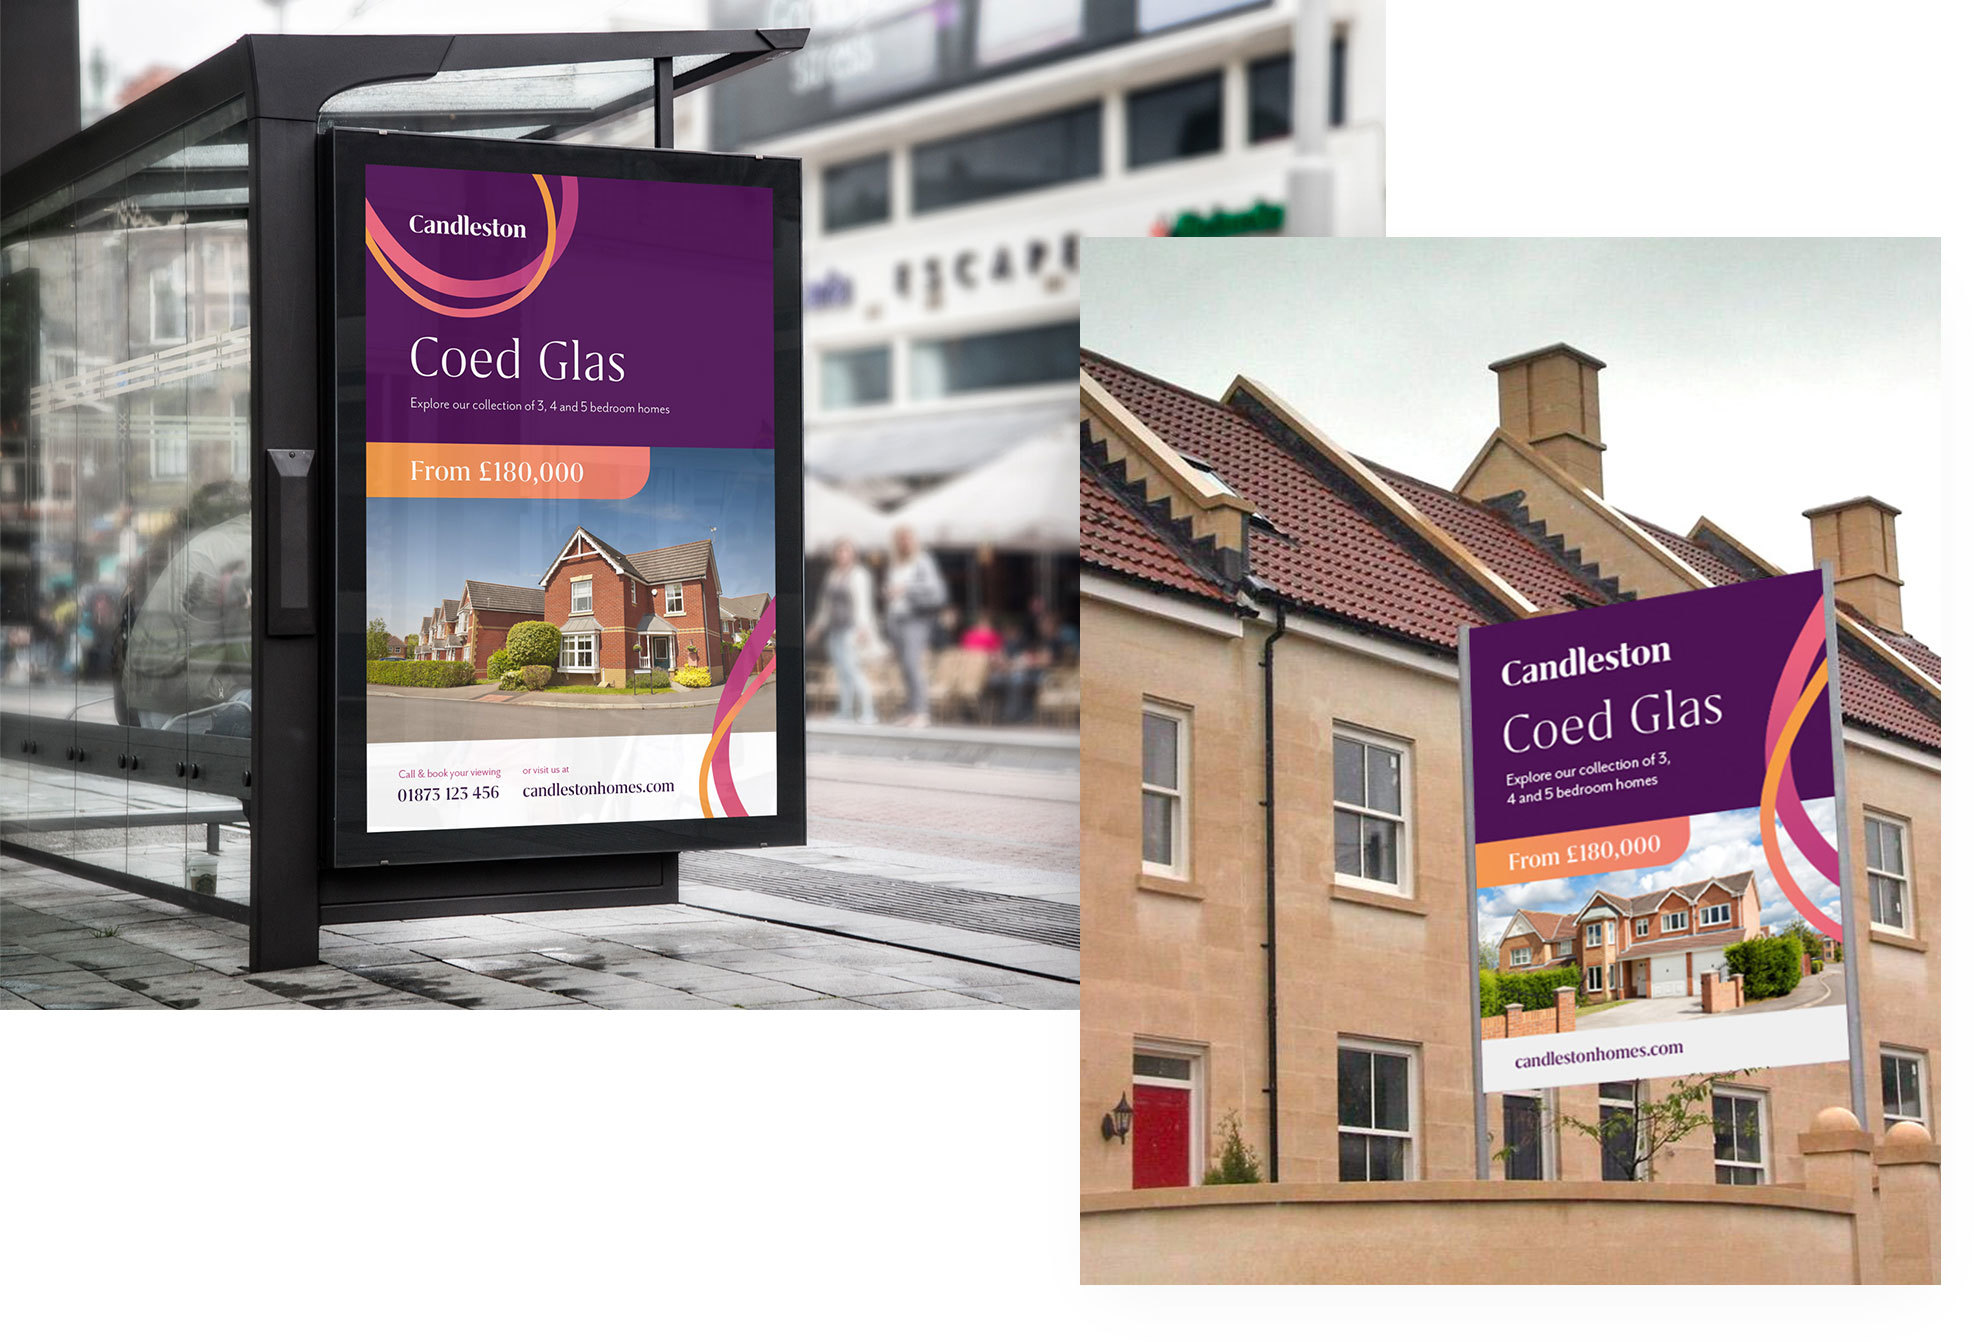 Candleston adverts and billboards